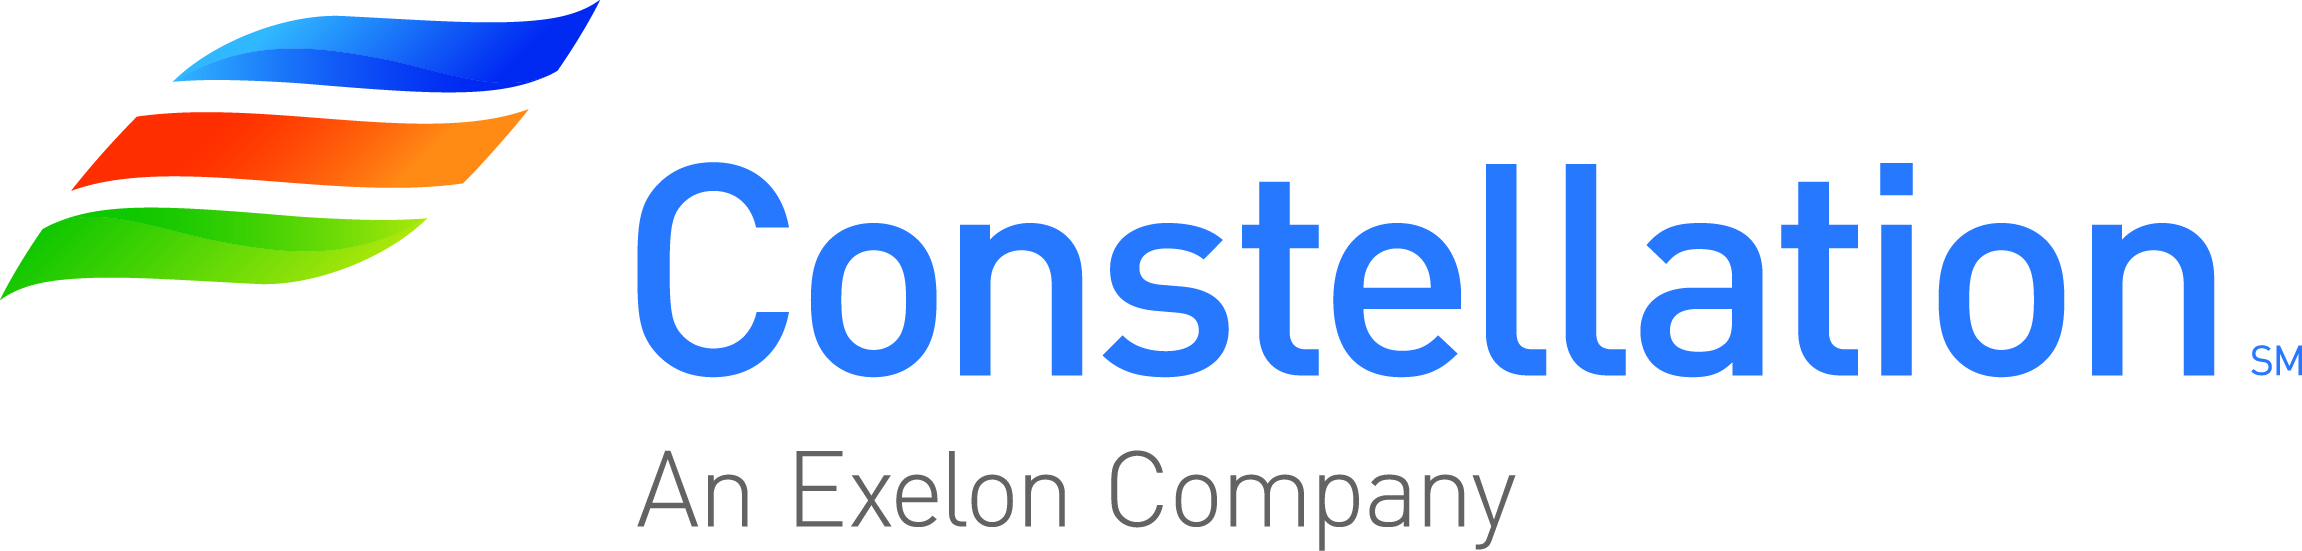 Constellation Donates To Local FFA Chapters